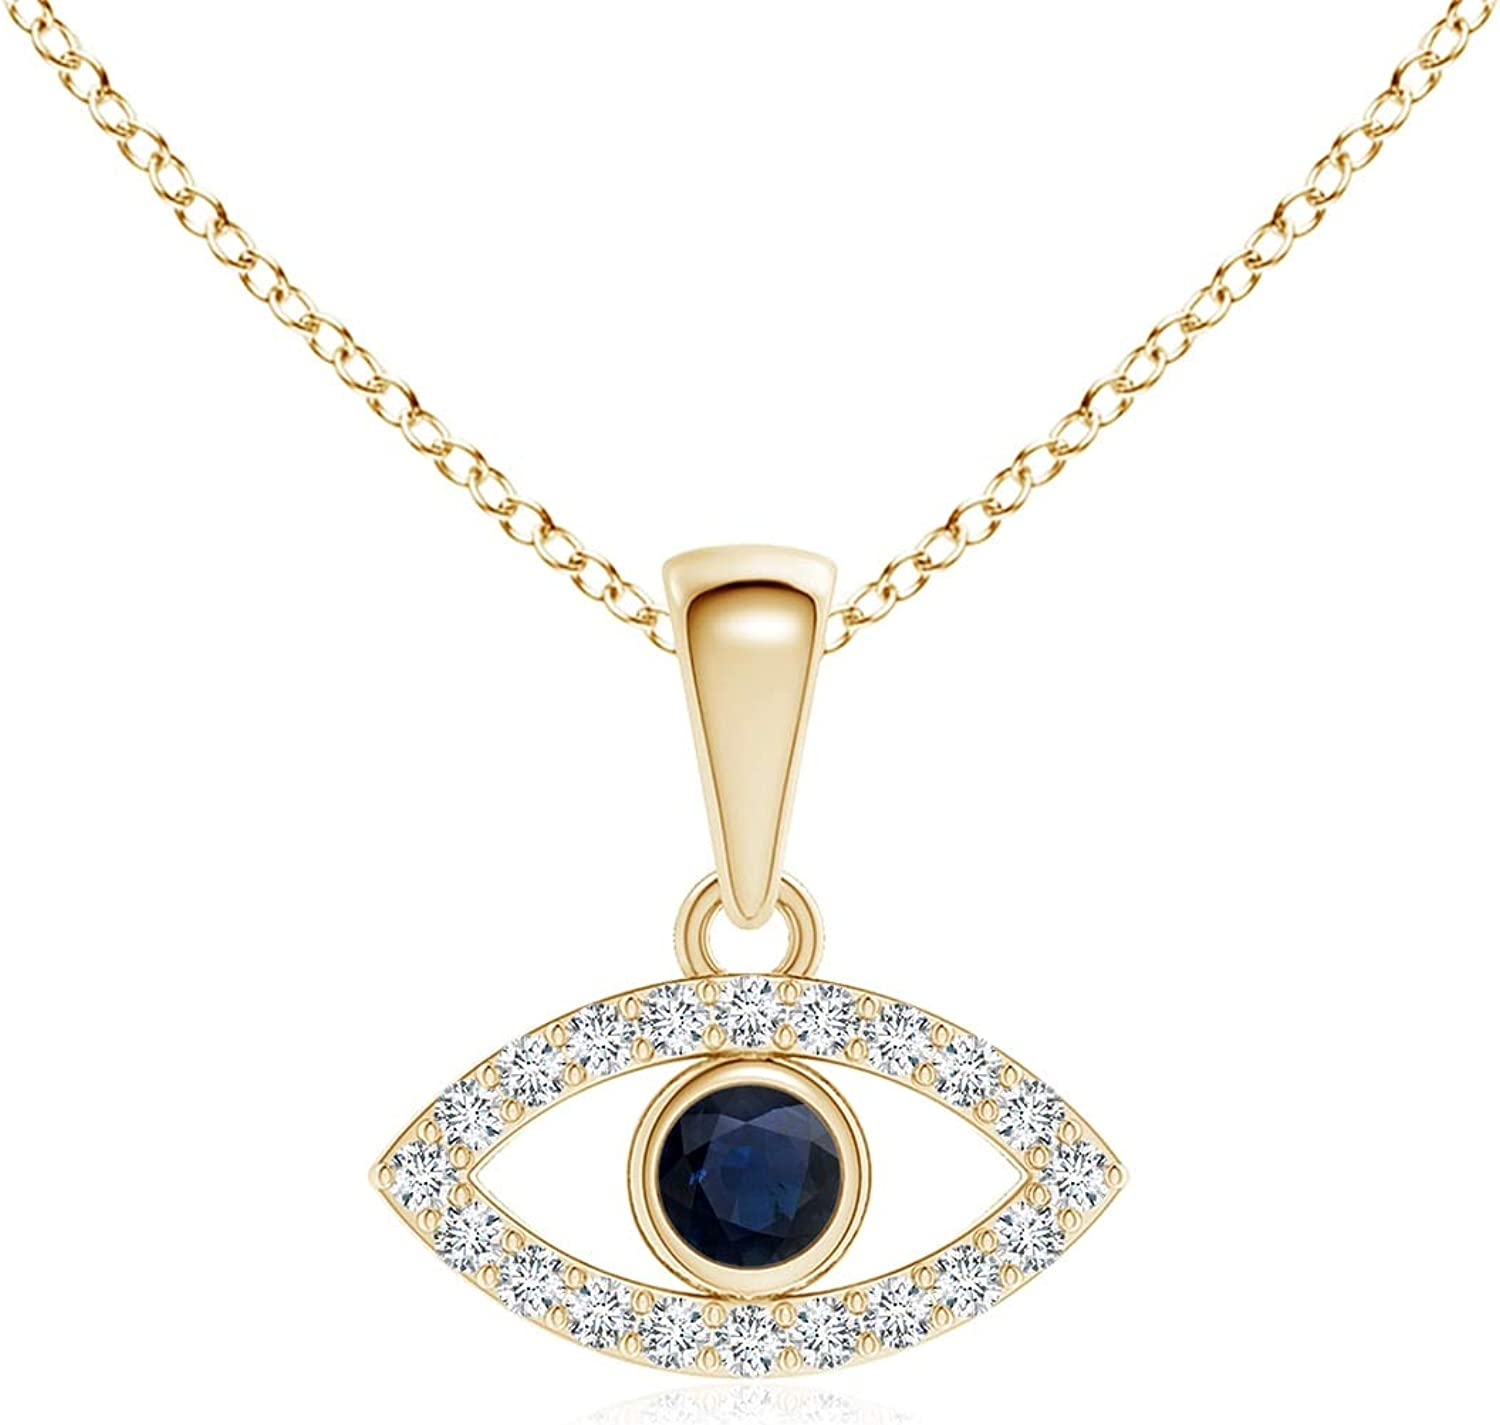 New product! New type Blue Sapphire Evil Eye Pendant Diamond with 2.5mm Accents Excellence